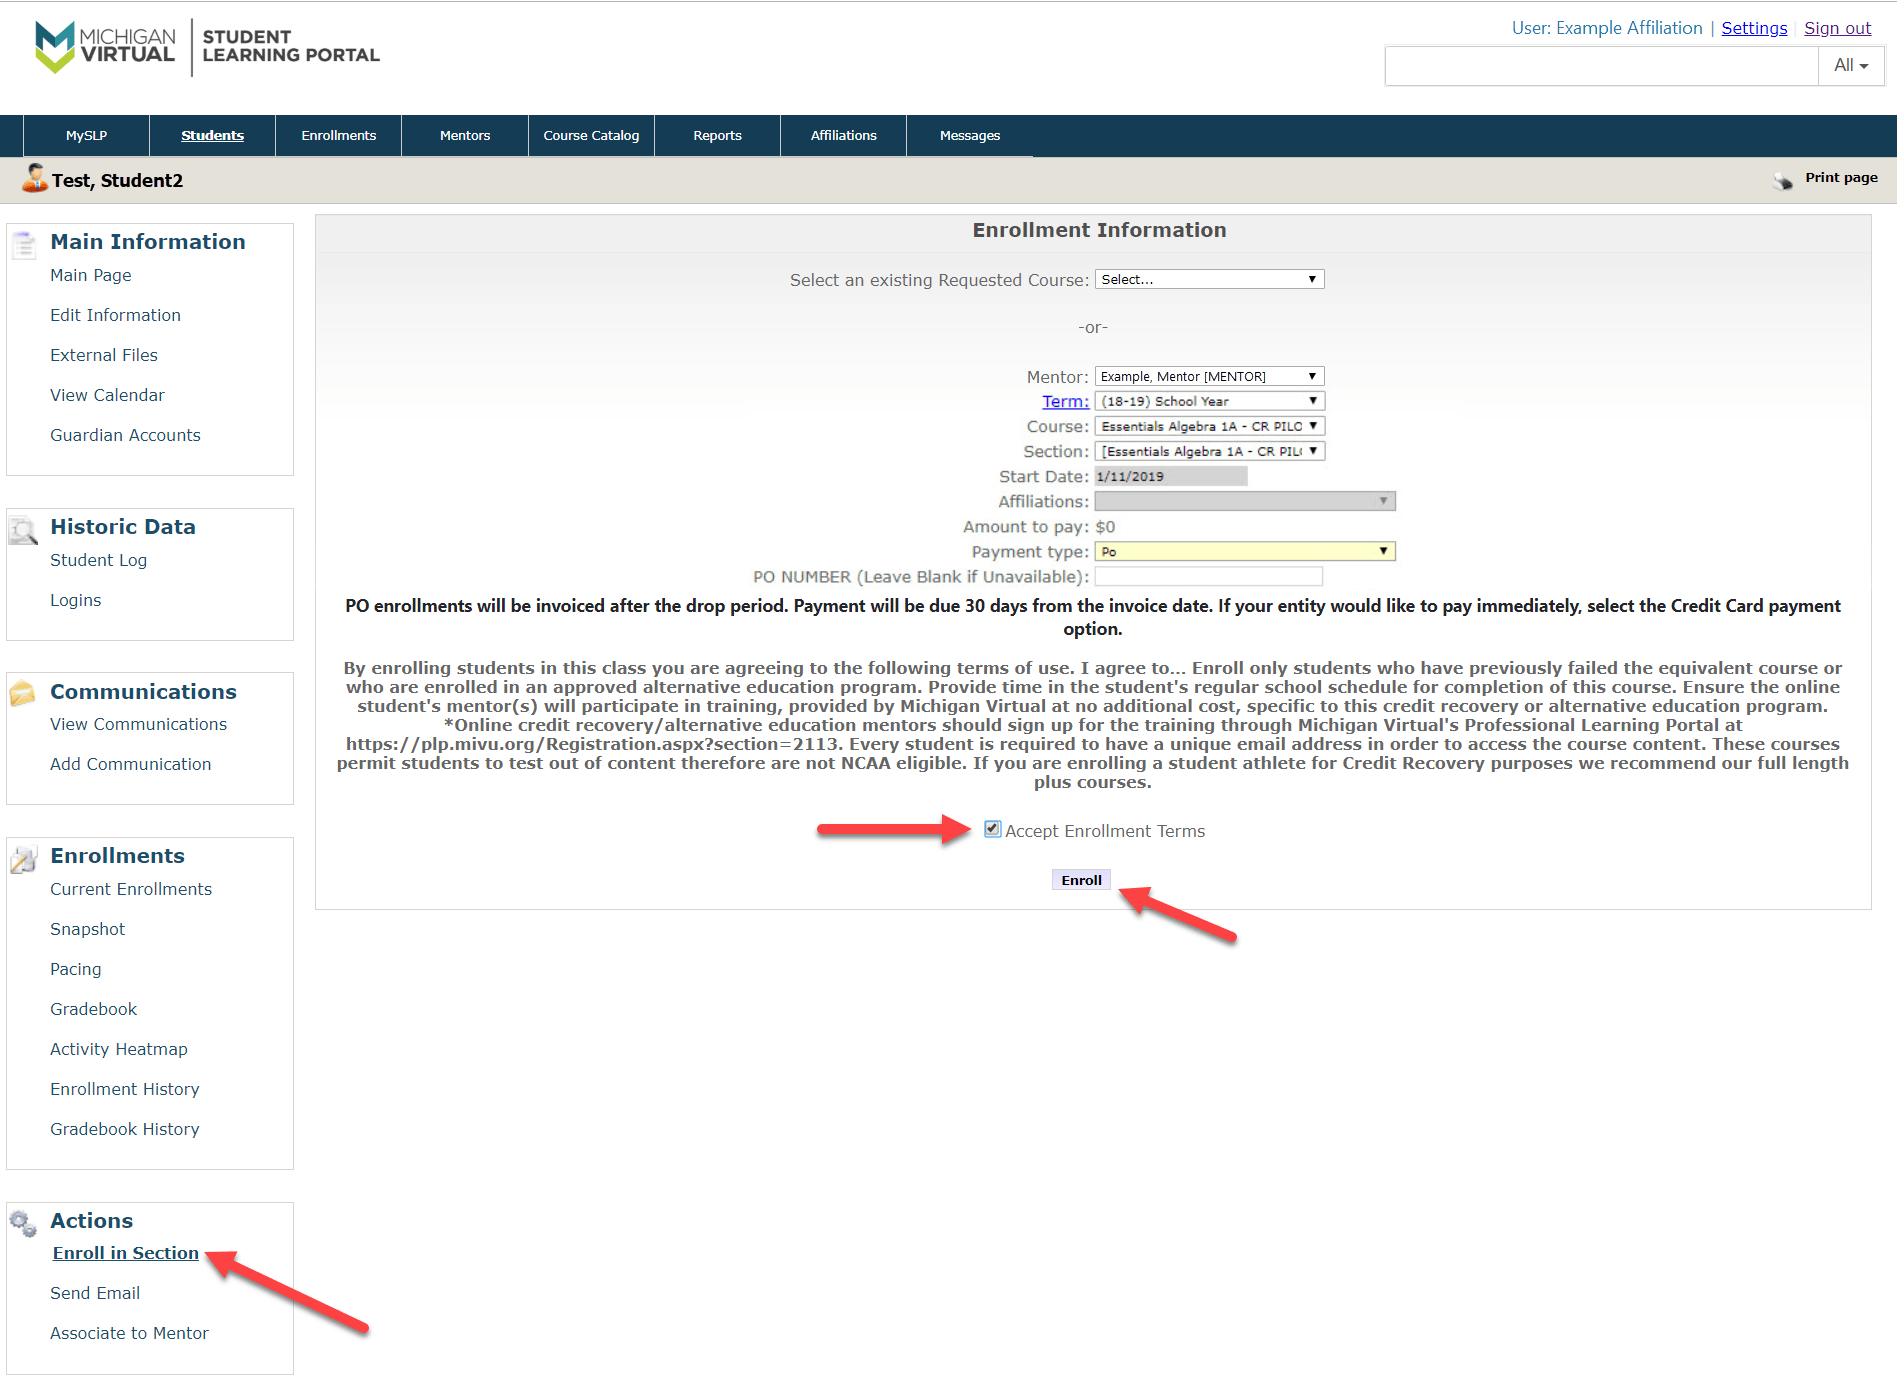 The Enrollment Information form is displayed with the fields mentioned above. Arrows are pointing to the Enroll in Section option in the left menu, to the accept terms checkbox and finally to the Enroll button.